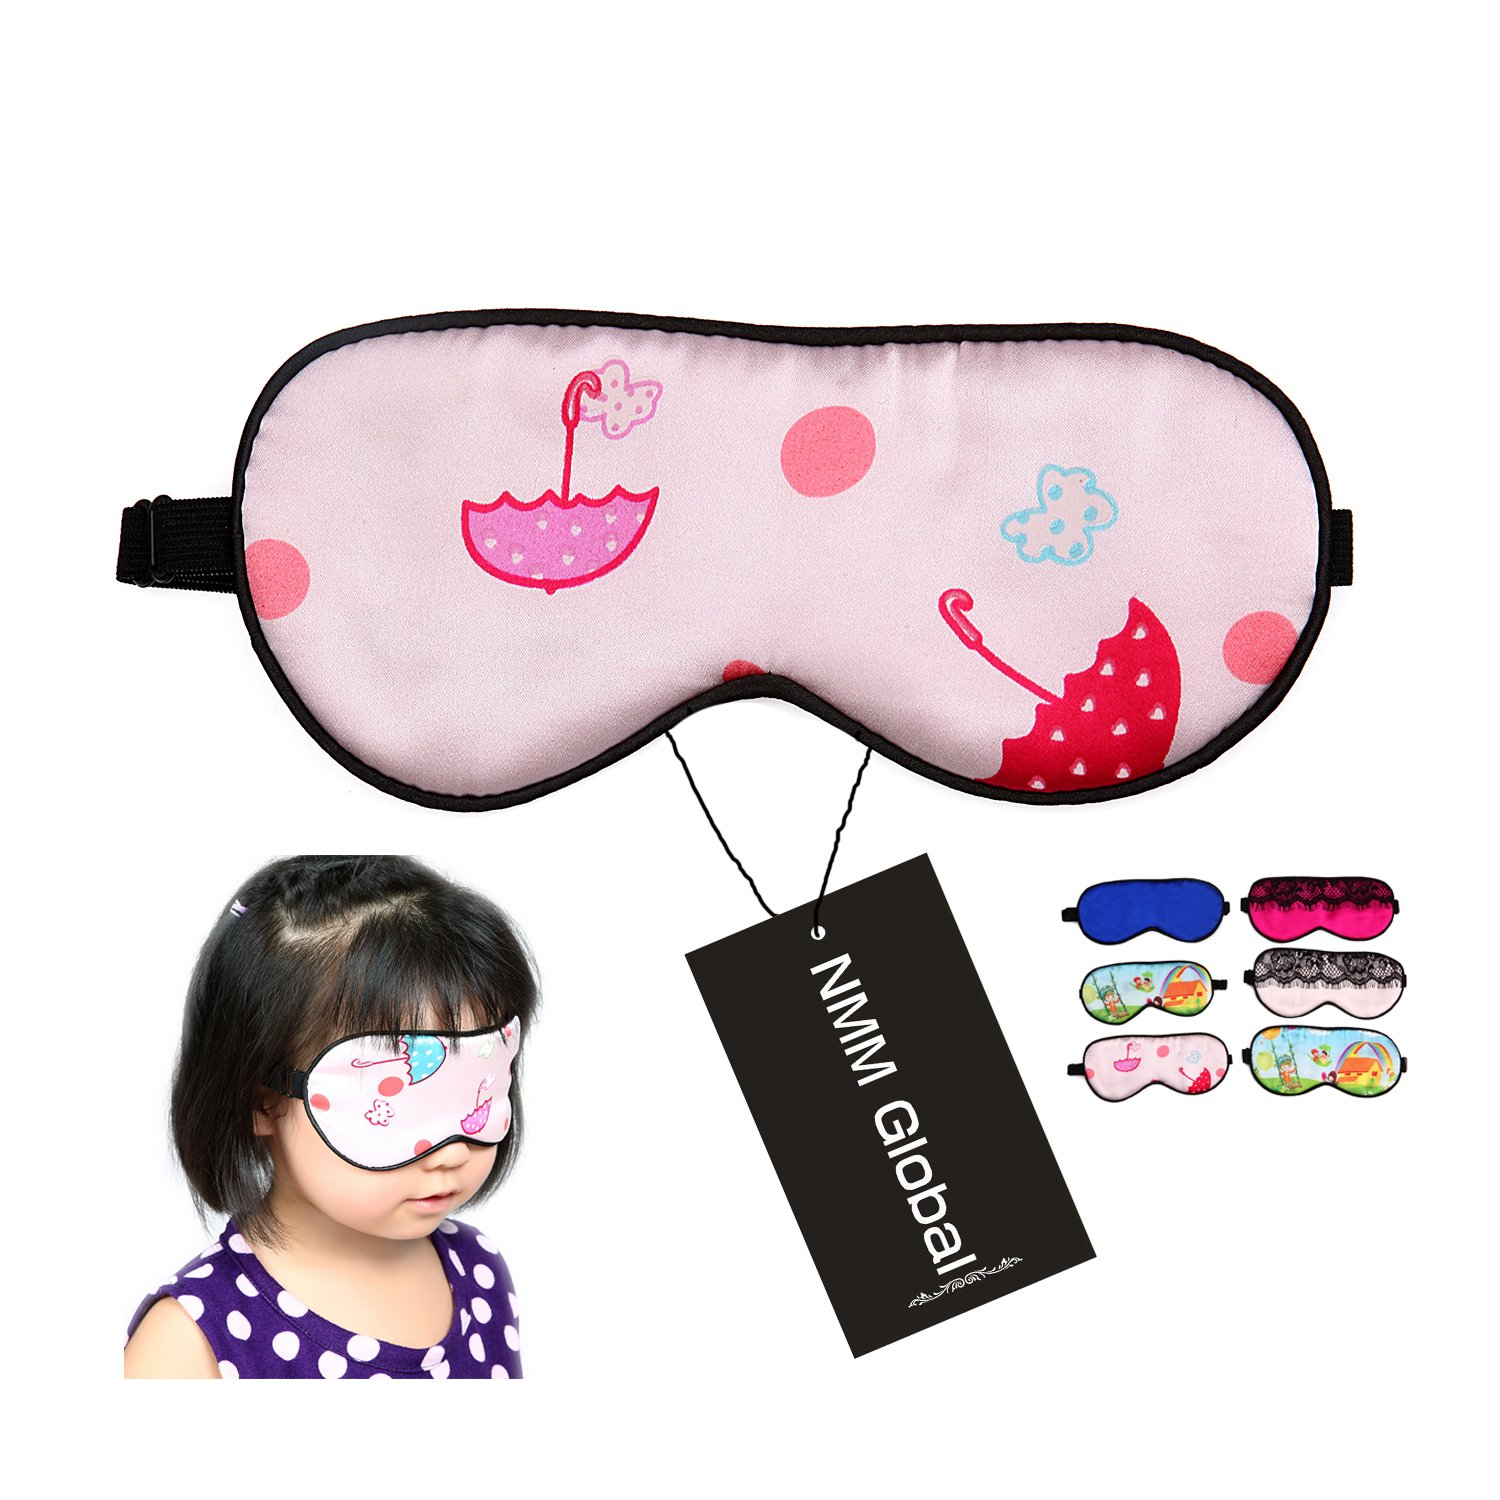 NMM Global 100% Mulberry Silk Sleep Mask, Natural Sleeping Mask for Girl Kids, Super Soft Eye Mask for Sleeping with Free Ear Plugs (PINK CHILD)